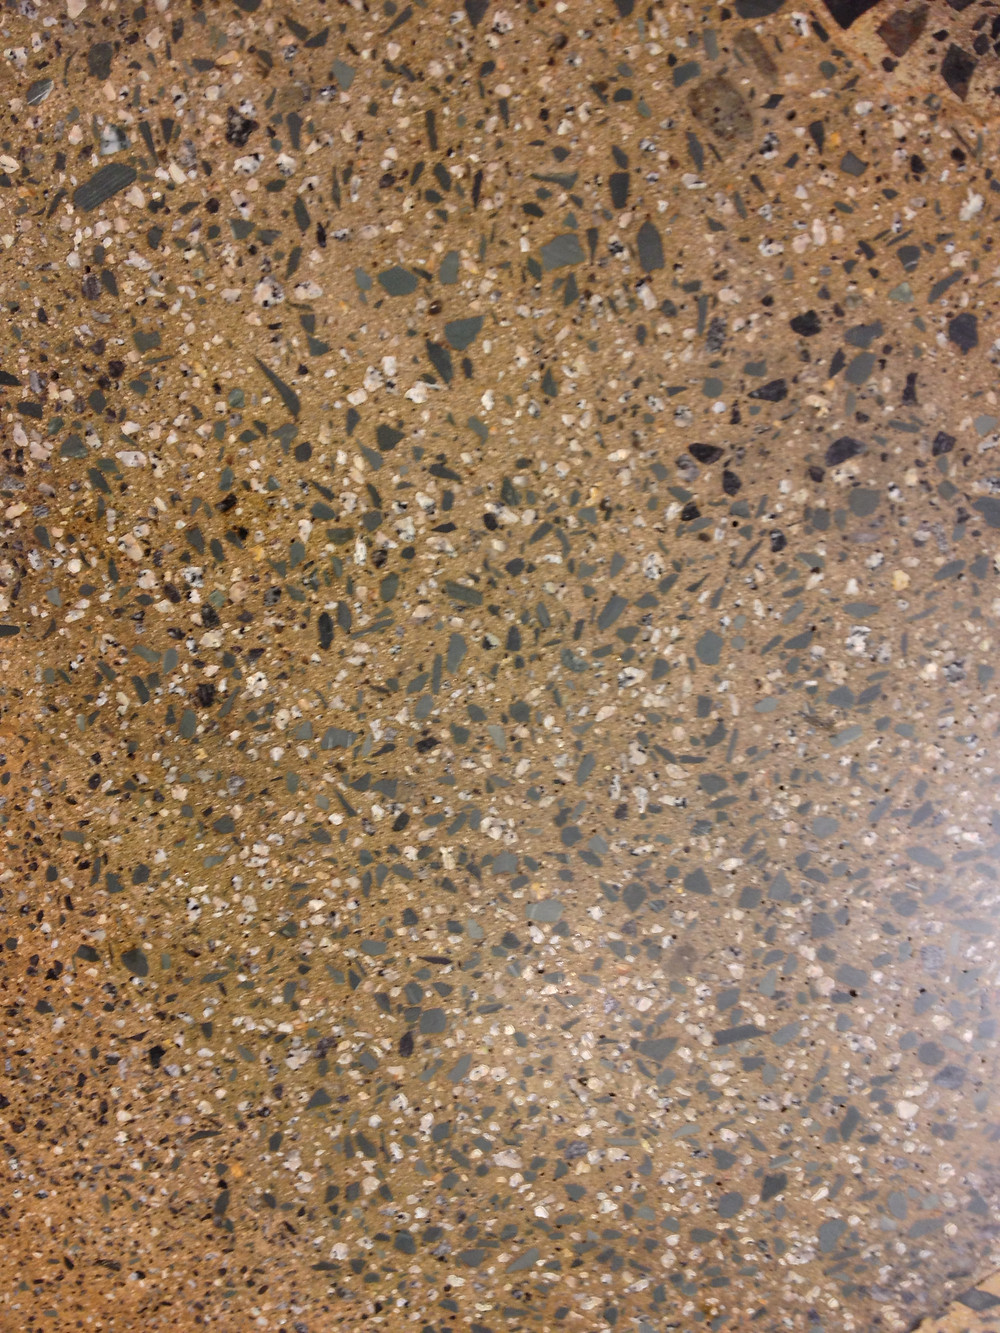 Deep Grind polished concrete with exposed aggregate